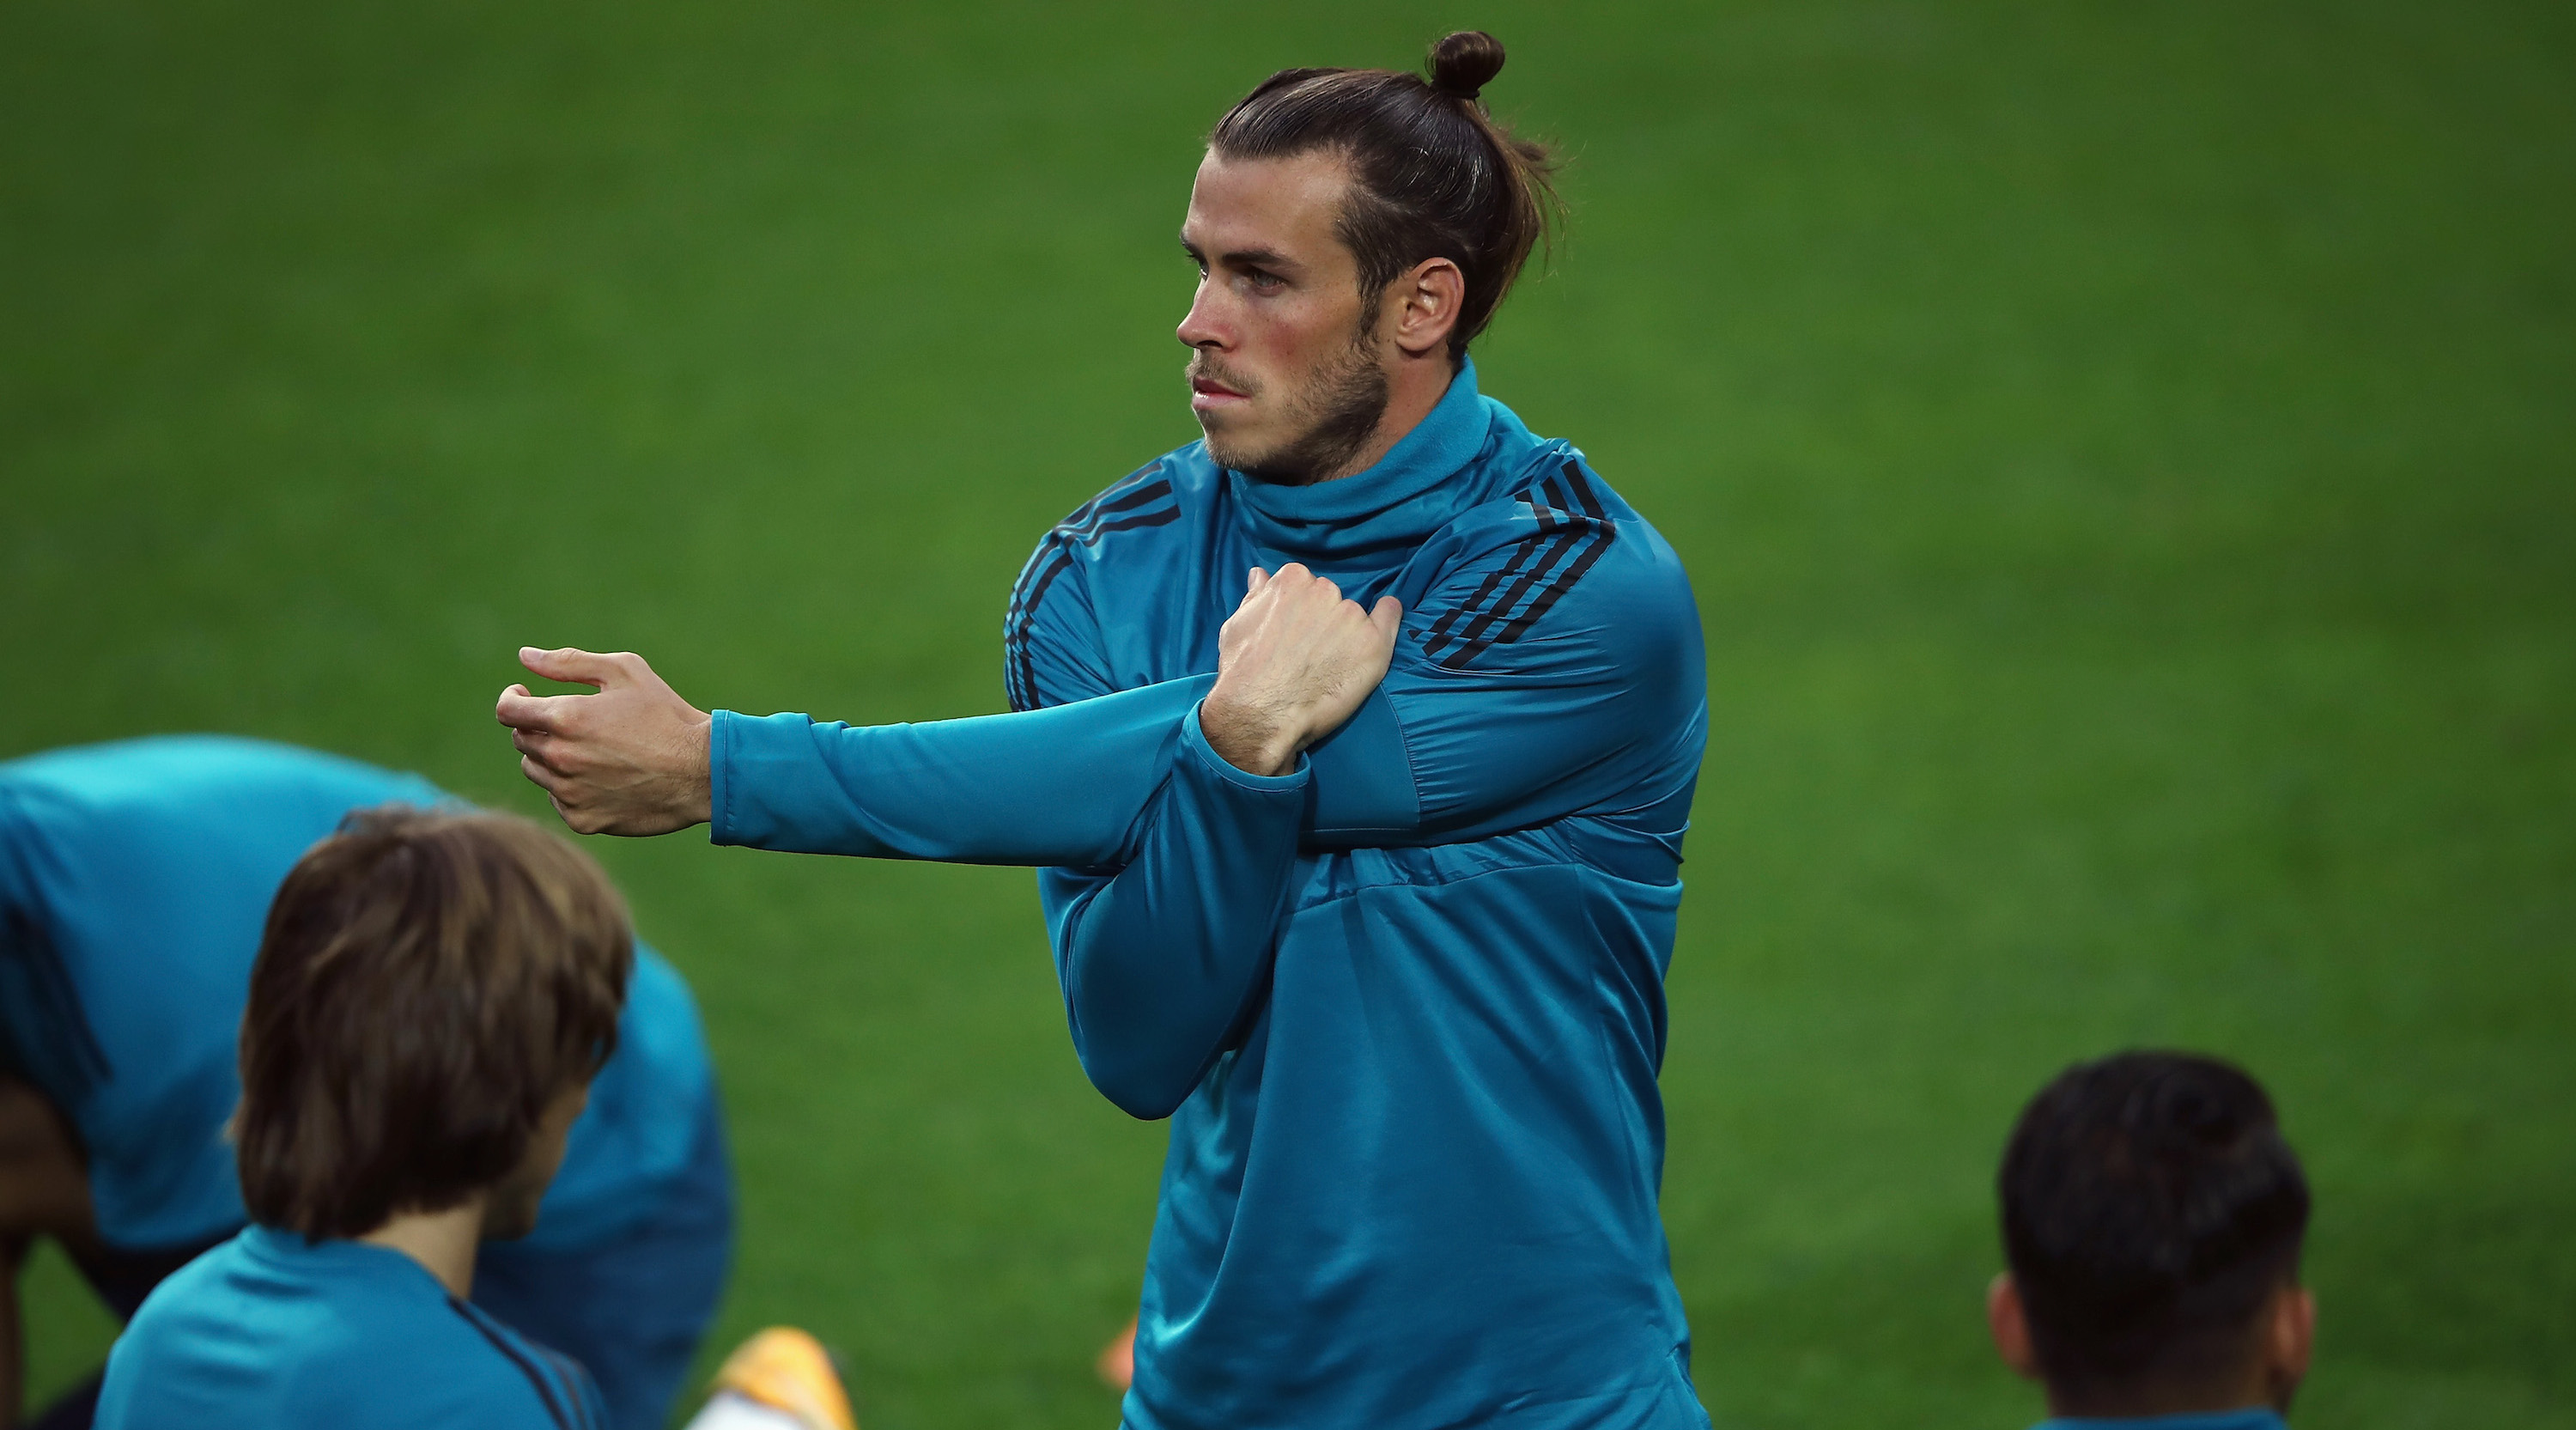 DORTMUND, GERMANY - SEPTEMBER 25: Gareth Bale stretches during a Real Madrid training session ahead of their UEFA Champions League Group H match against Borussia Dortmund at Signal Iduna Park on September 25, 2017 in Dortmund, Germany. (Photo by Alex Grimm/Getty Images)